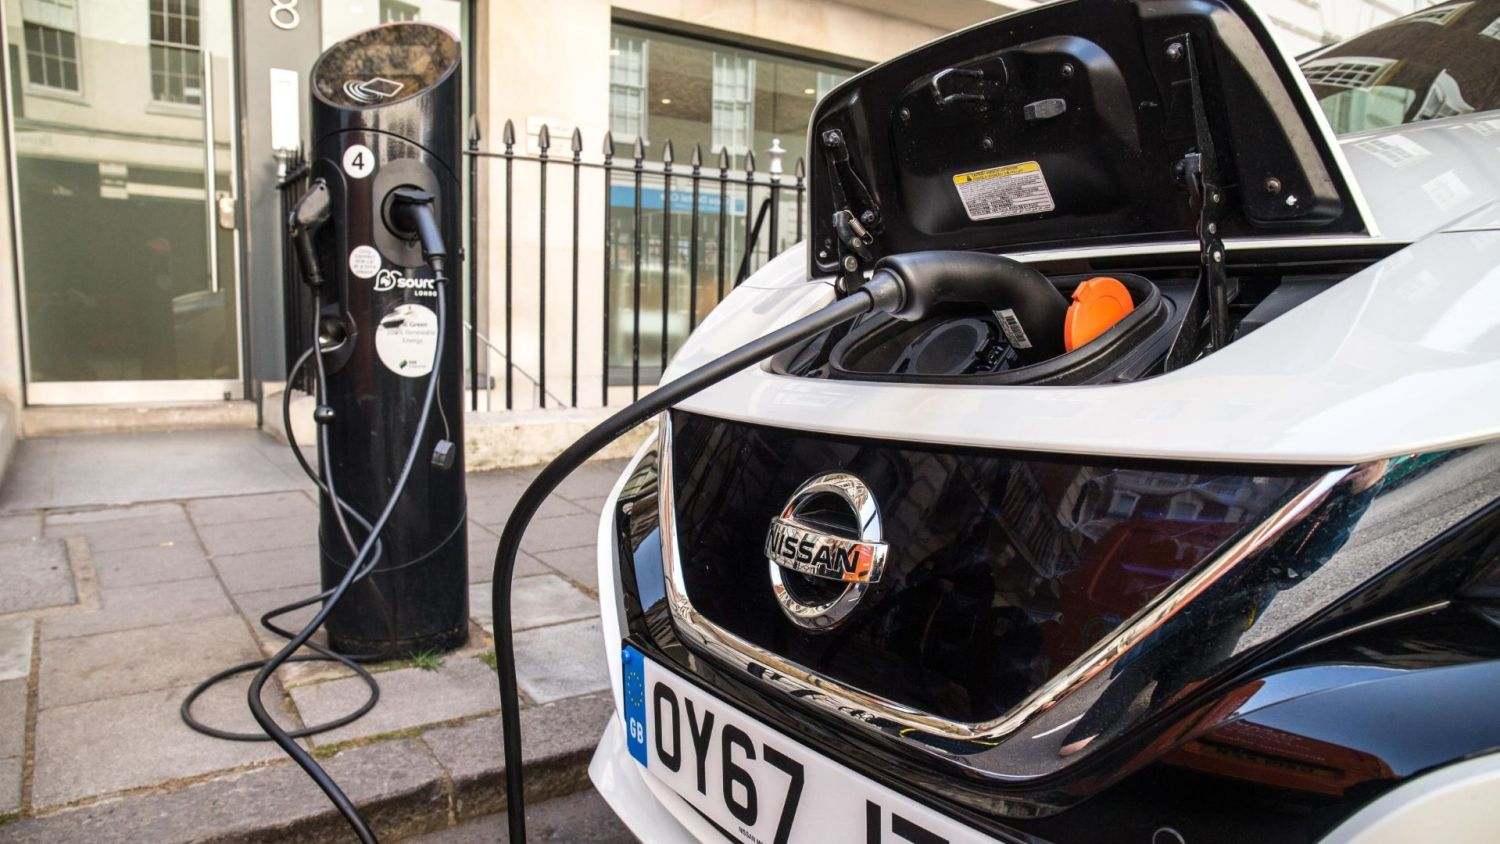 10,000 charging locations in the UK